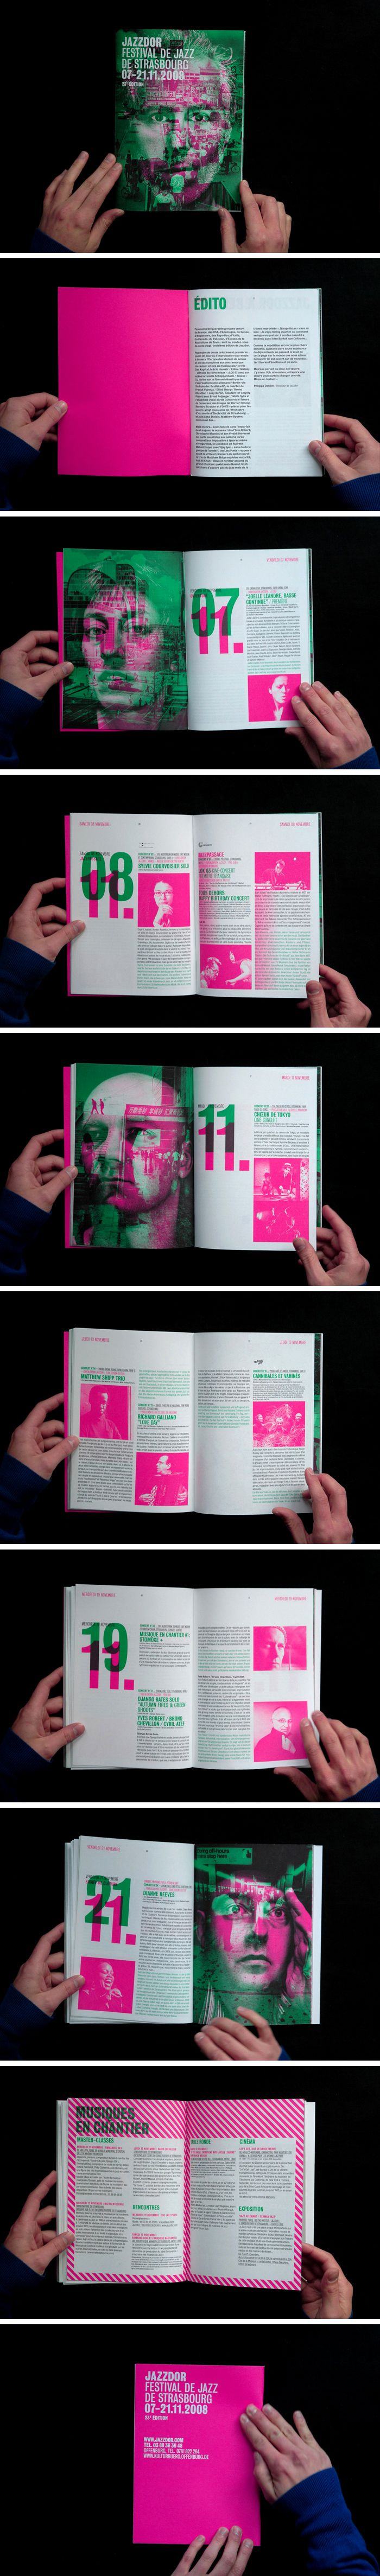 "Jazzdor, it's the Strasbourg Jazz festival. The French agency ""Helmo"" has designed a #brochure, #posters and program in 3 colors. An identity really nice and interesting 